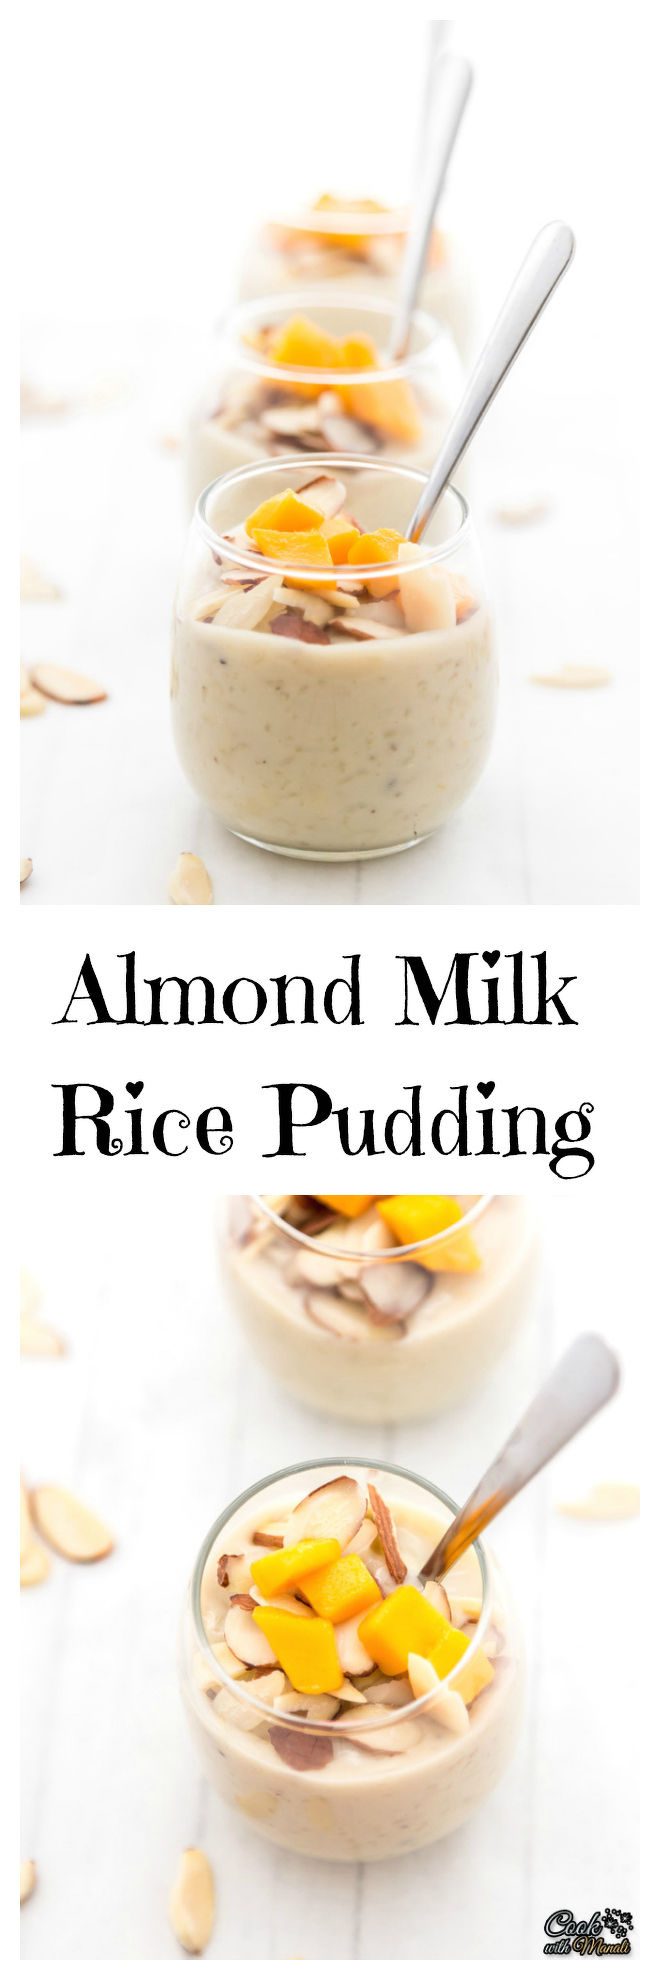 Almond Milk Rice Pudding Collage-nocwm